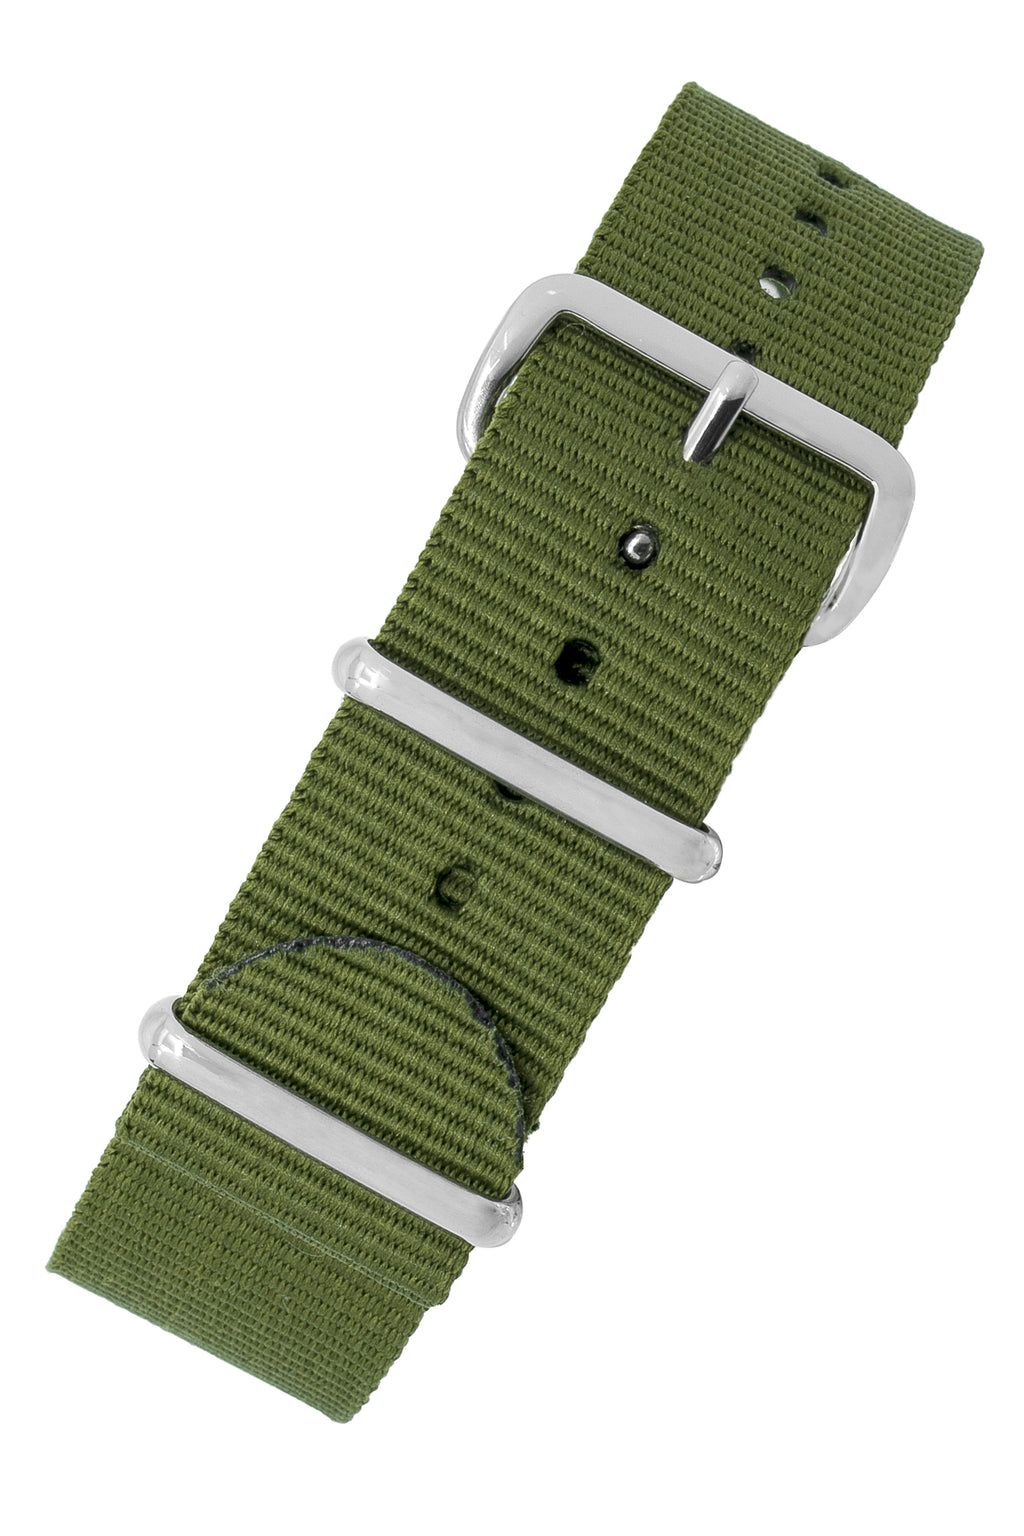 Nato Watch Straps in GREEN with Polished Buckle and Keepers